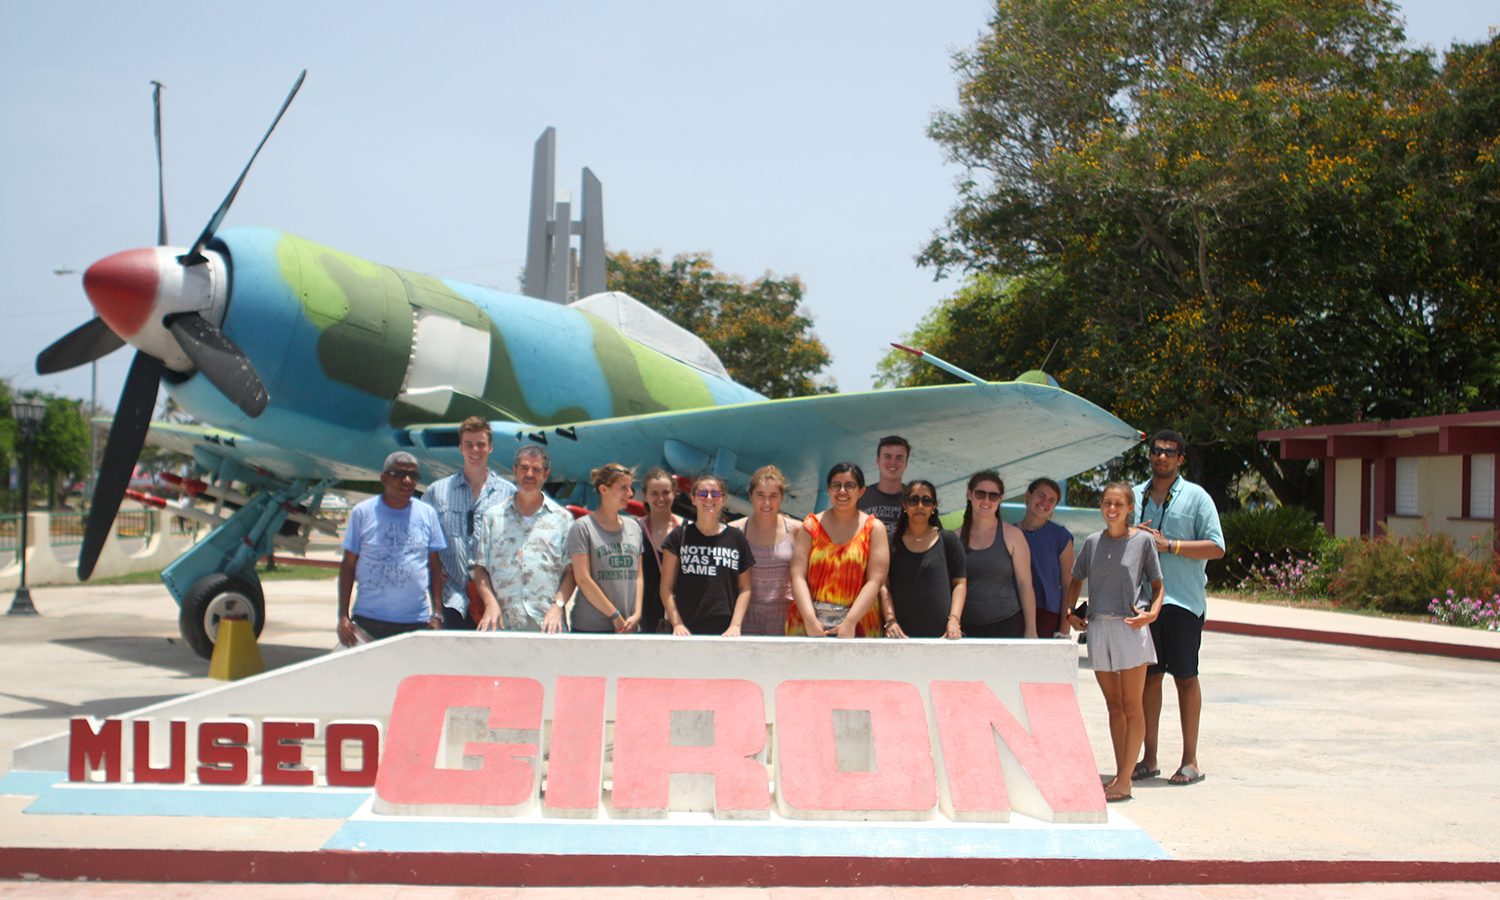 HWS students accompanied by Professor Juan Liébana and Cuban expert and guide Edelso Moret, pose for a picture outside the museum of the Bay of Pigs.